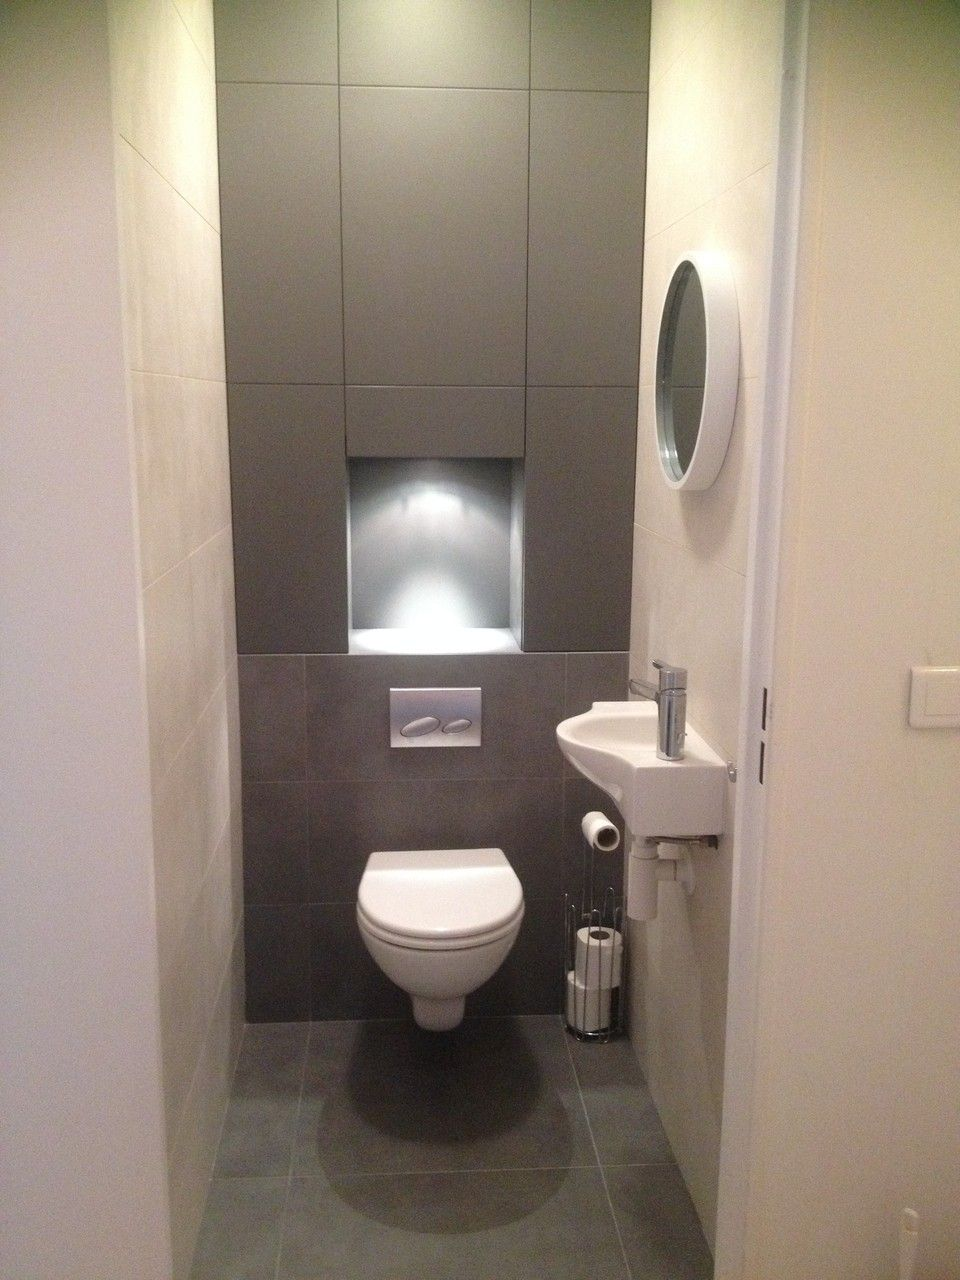 Niches Sur Mesure En 2019 Amenagement Toilettes Toilettes